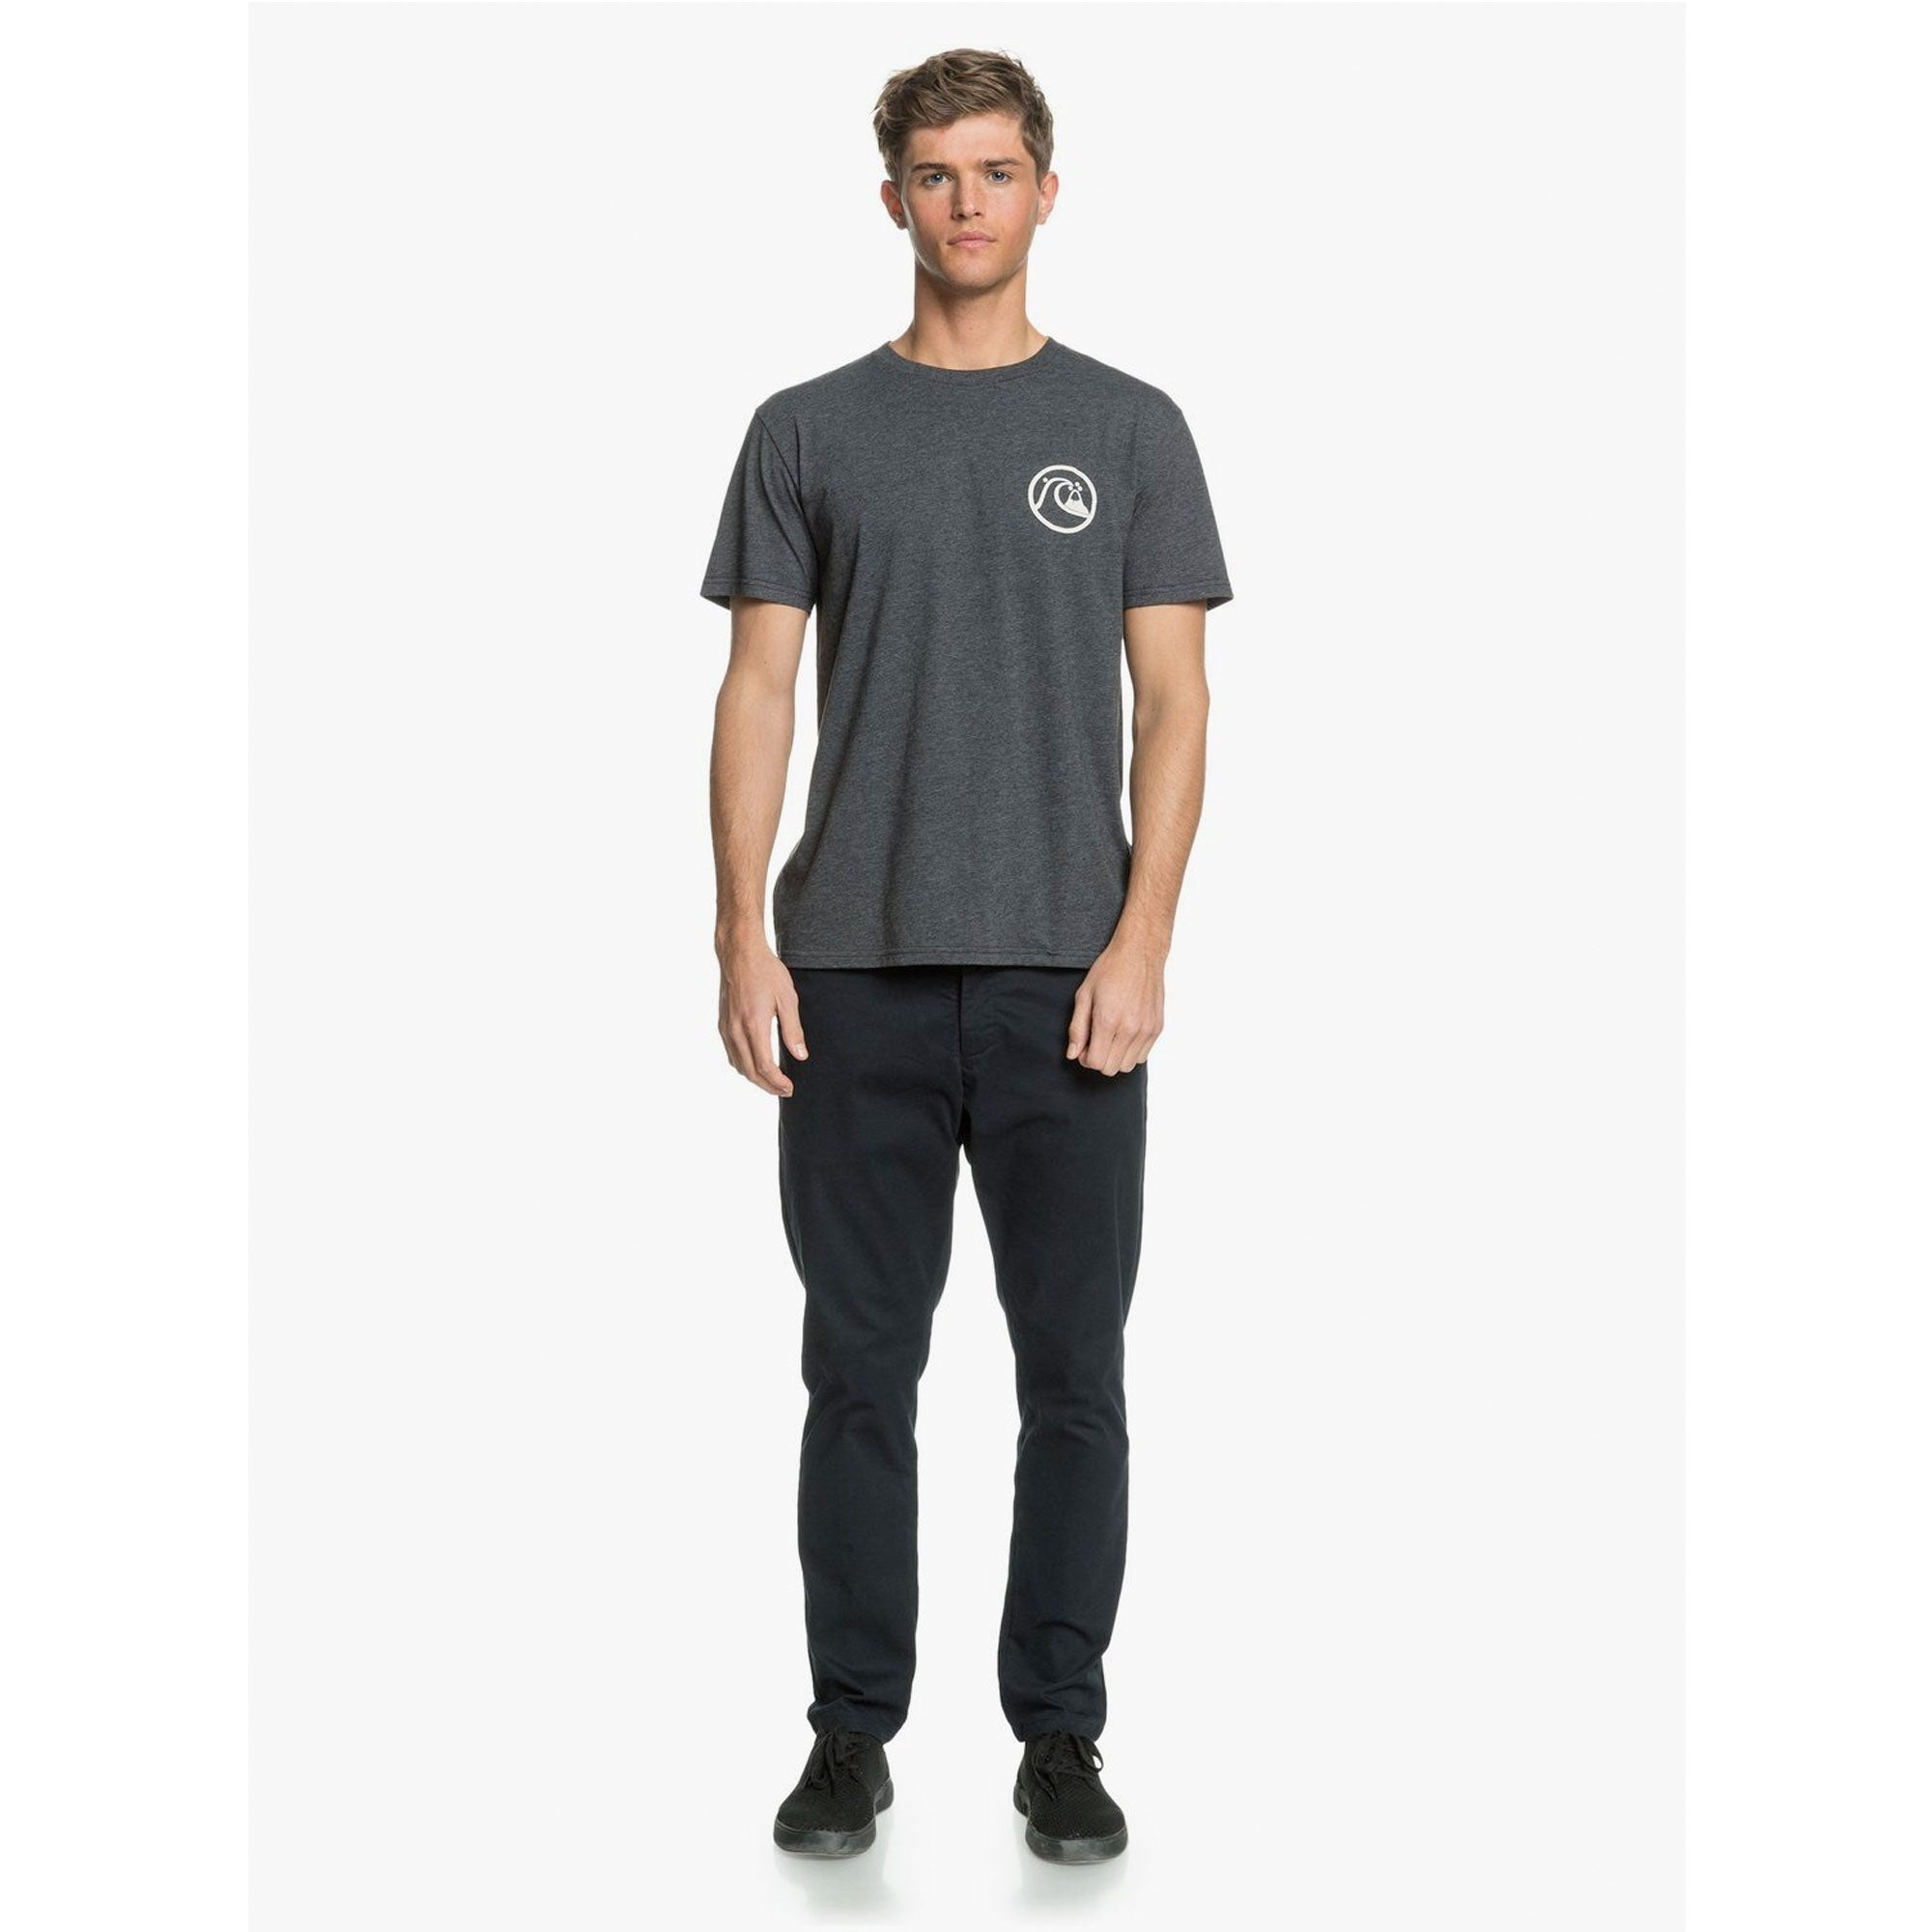 Quiksilver Low Rising Men's S/S T-Shirt